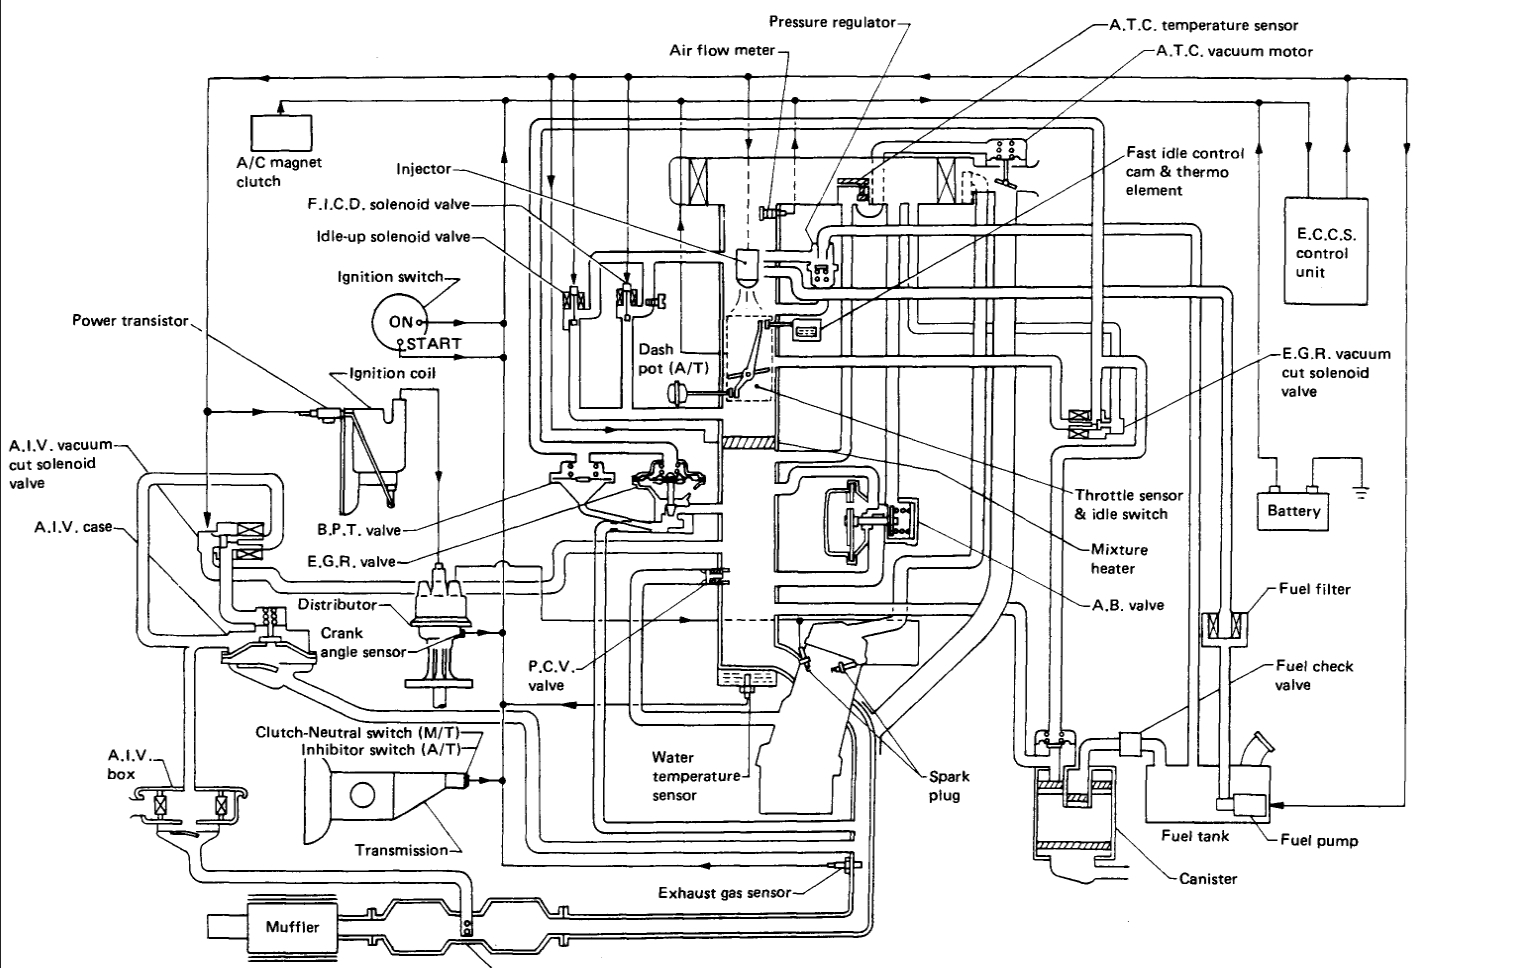 1991 22re Vacuum Line Diagram Electrical Wiring Toyota 22r 91 Pickup Diagrams Download U2022 1993